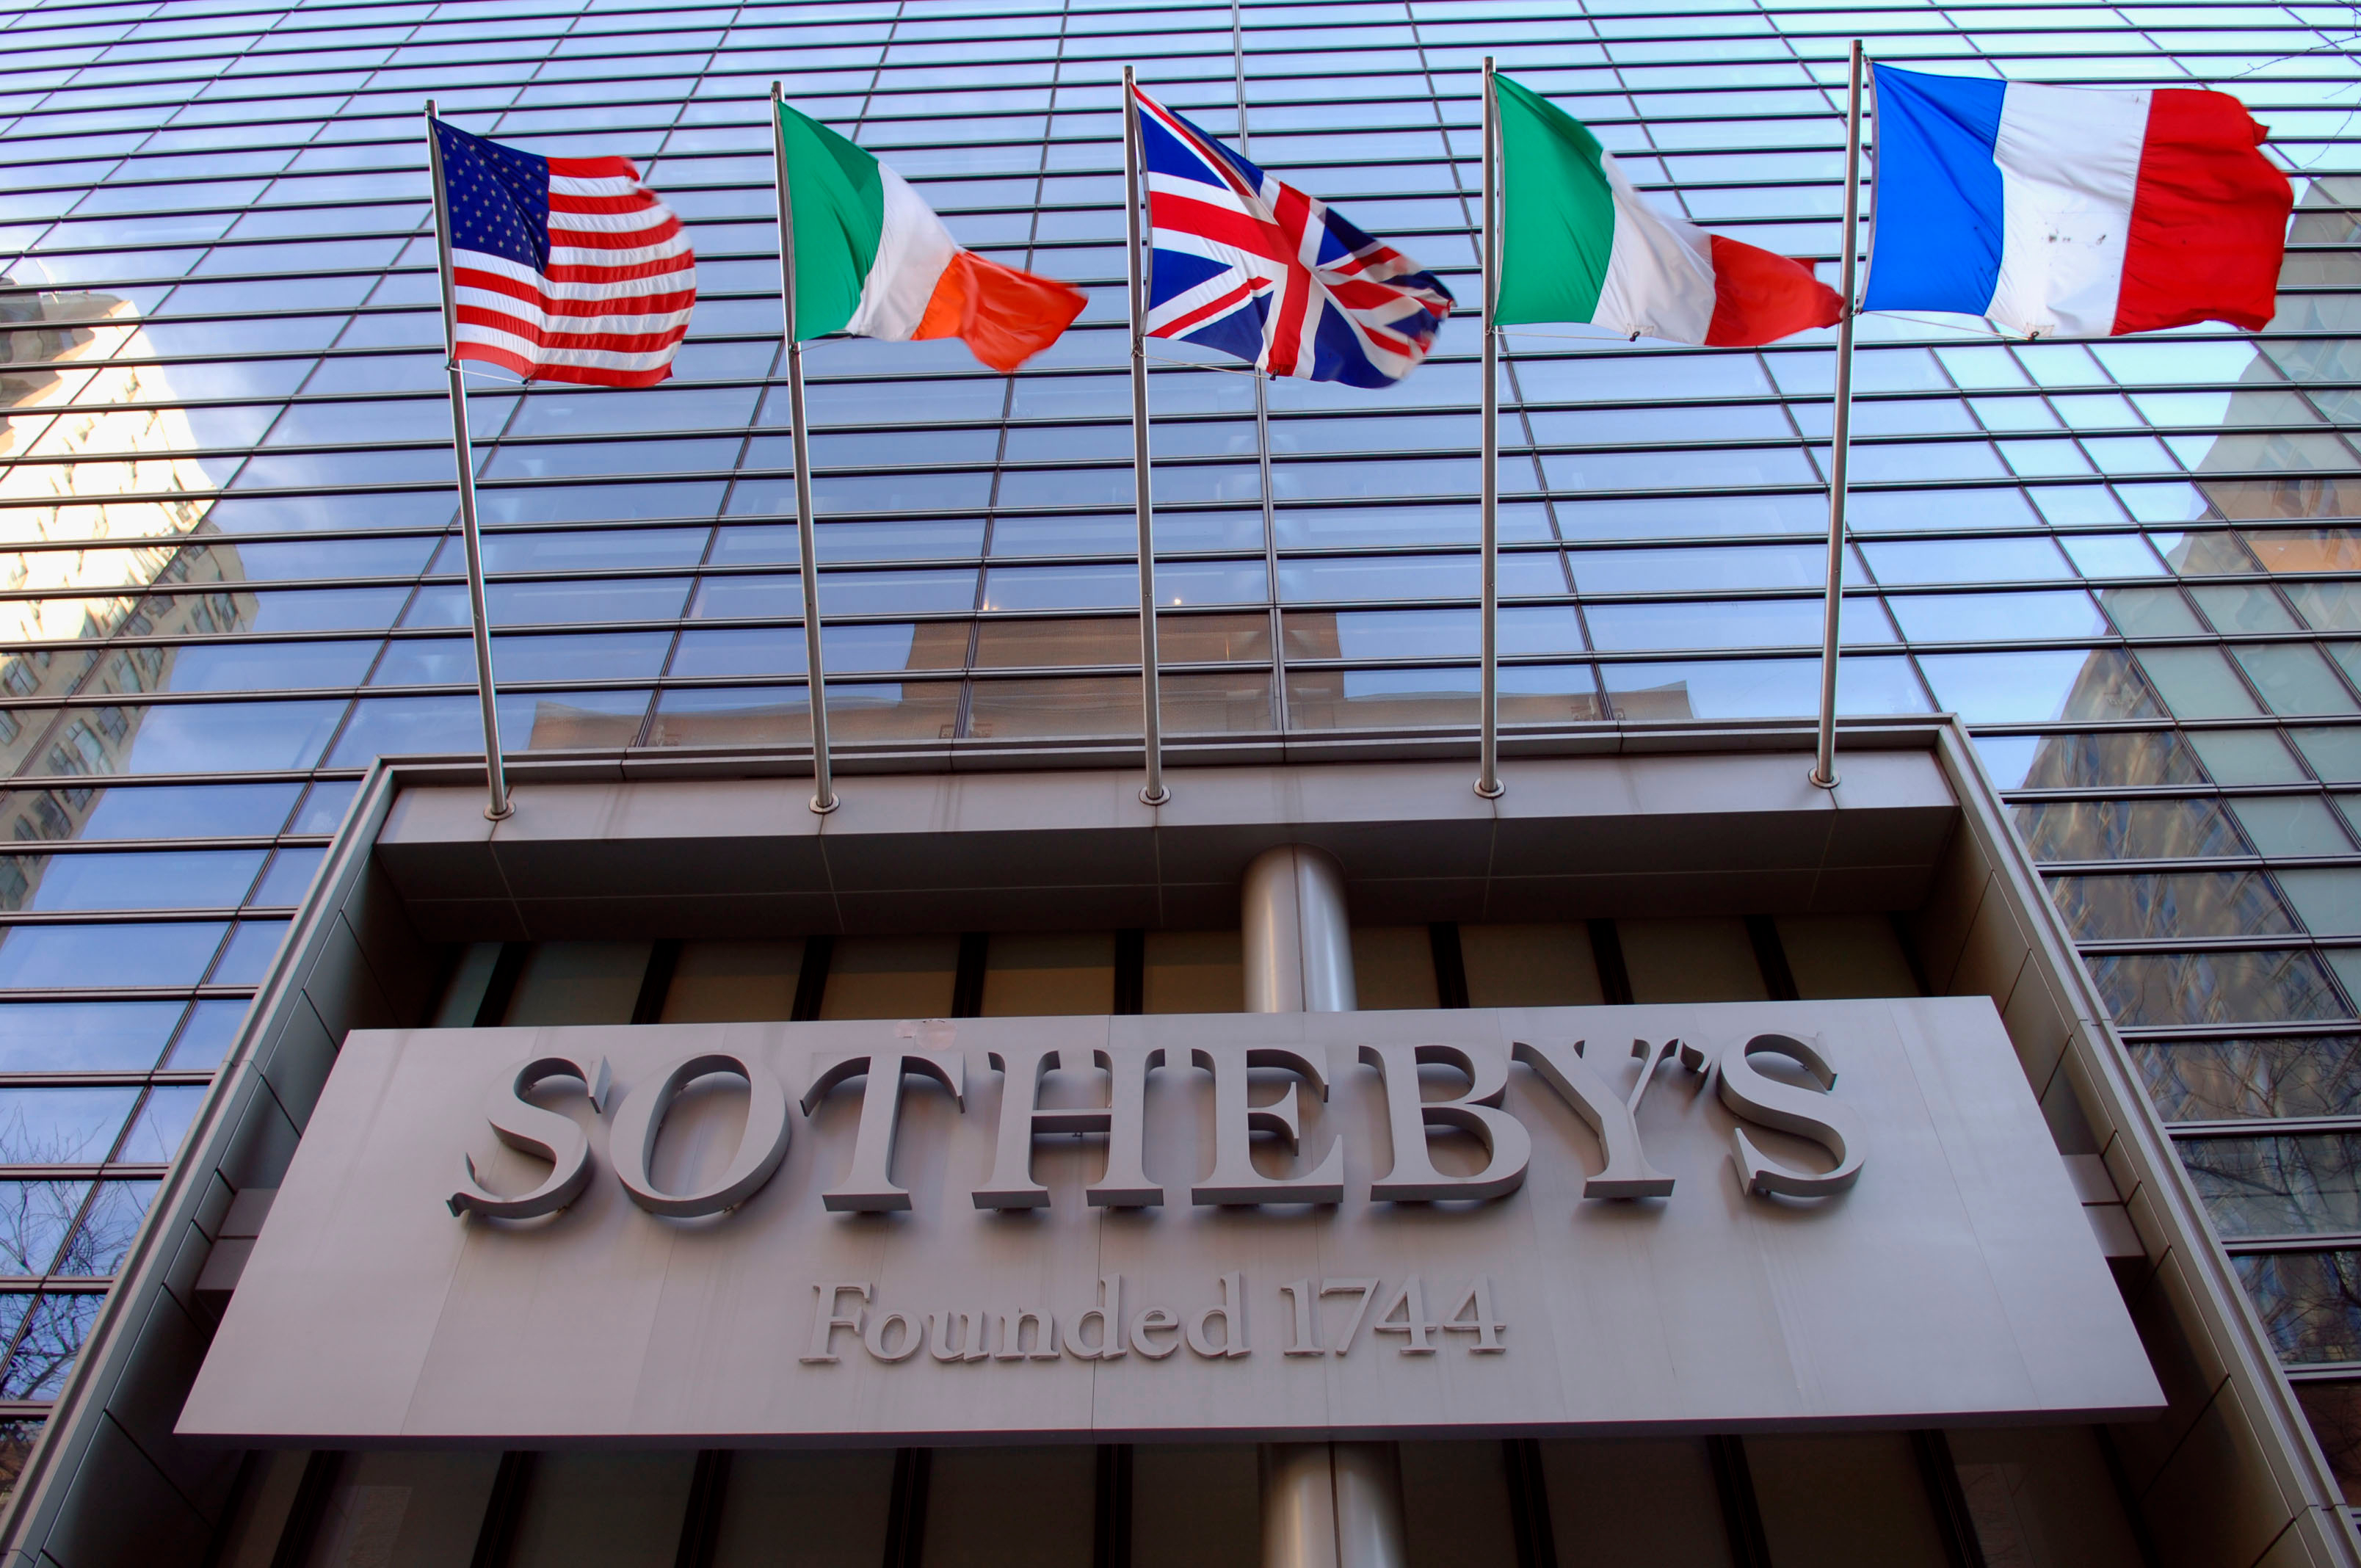 Sotheby's Reports Standard Q1 Loss, with Lower Volume, Higher Commission Margin